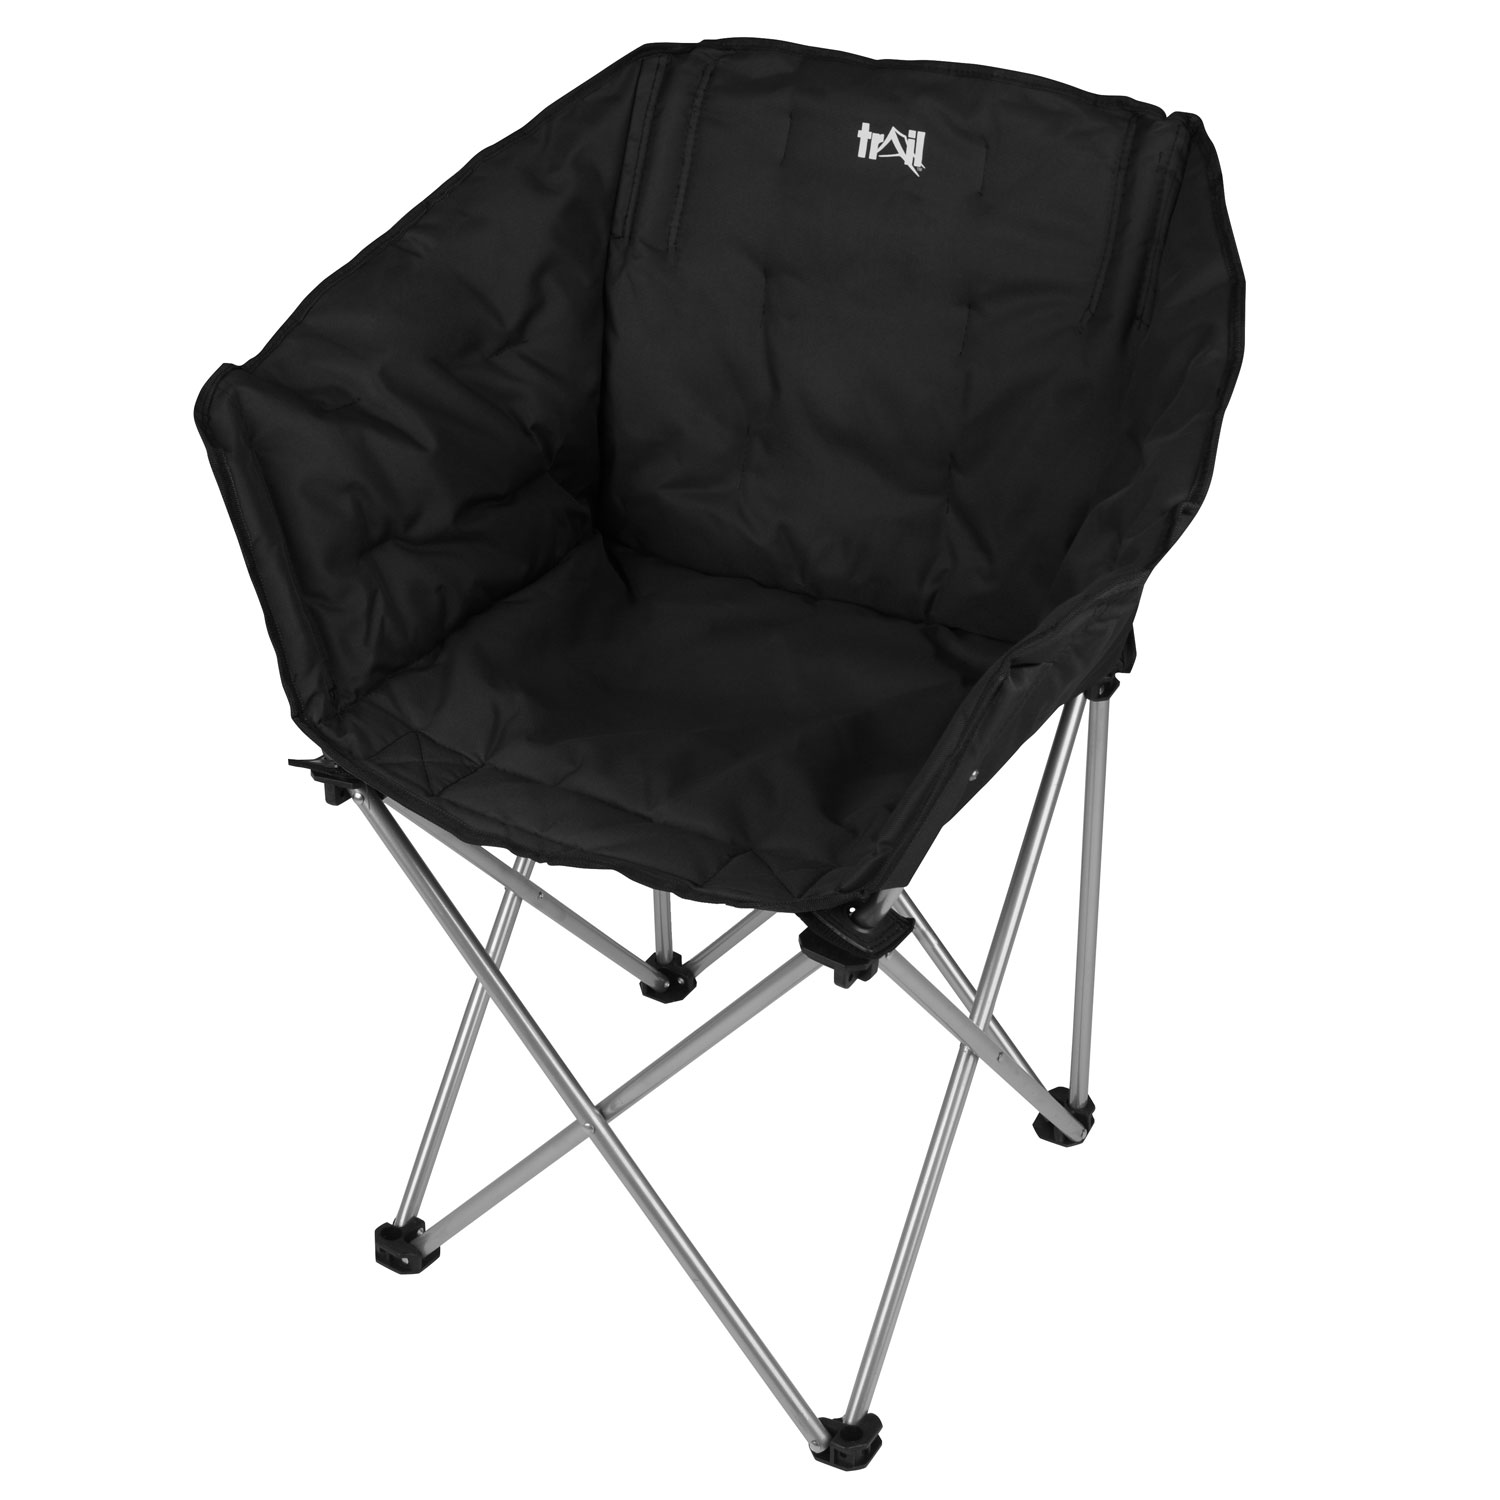 fishing chair heavy duty covers at hobby lobby folding camping portable padded tub seat outdoor